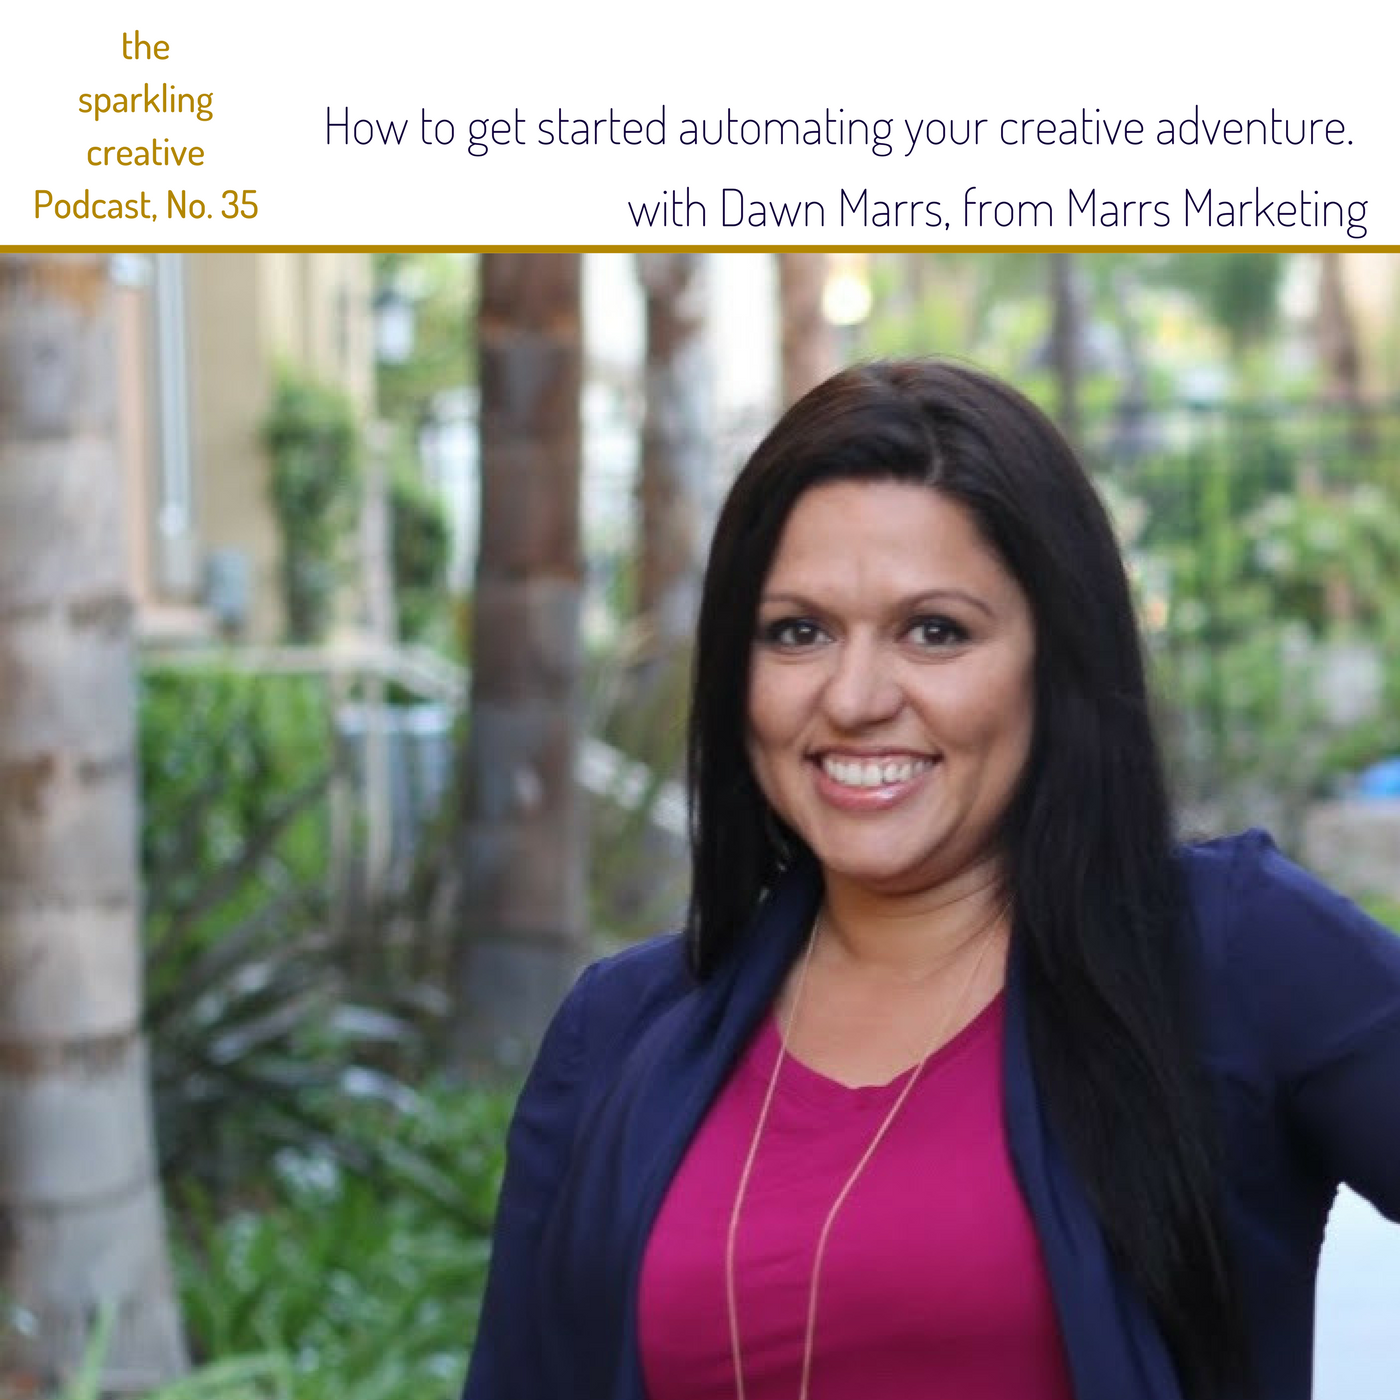 Artwork for Episode 35: how to get started automating your creative adventure  with Dawn Marrs